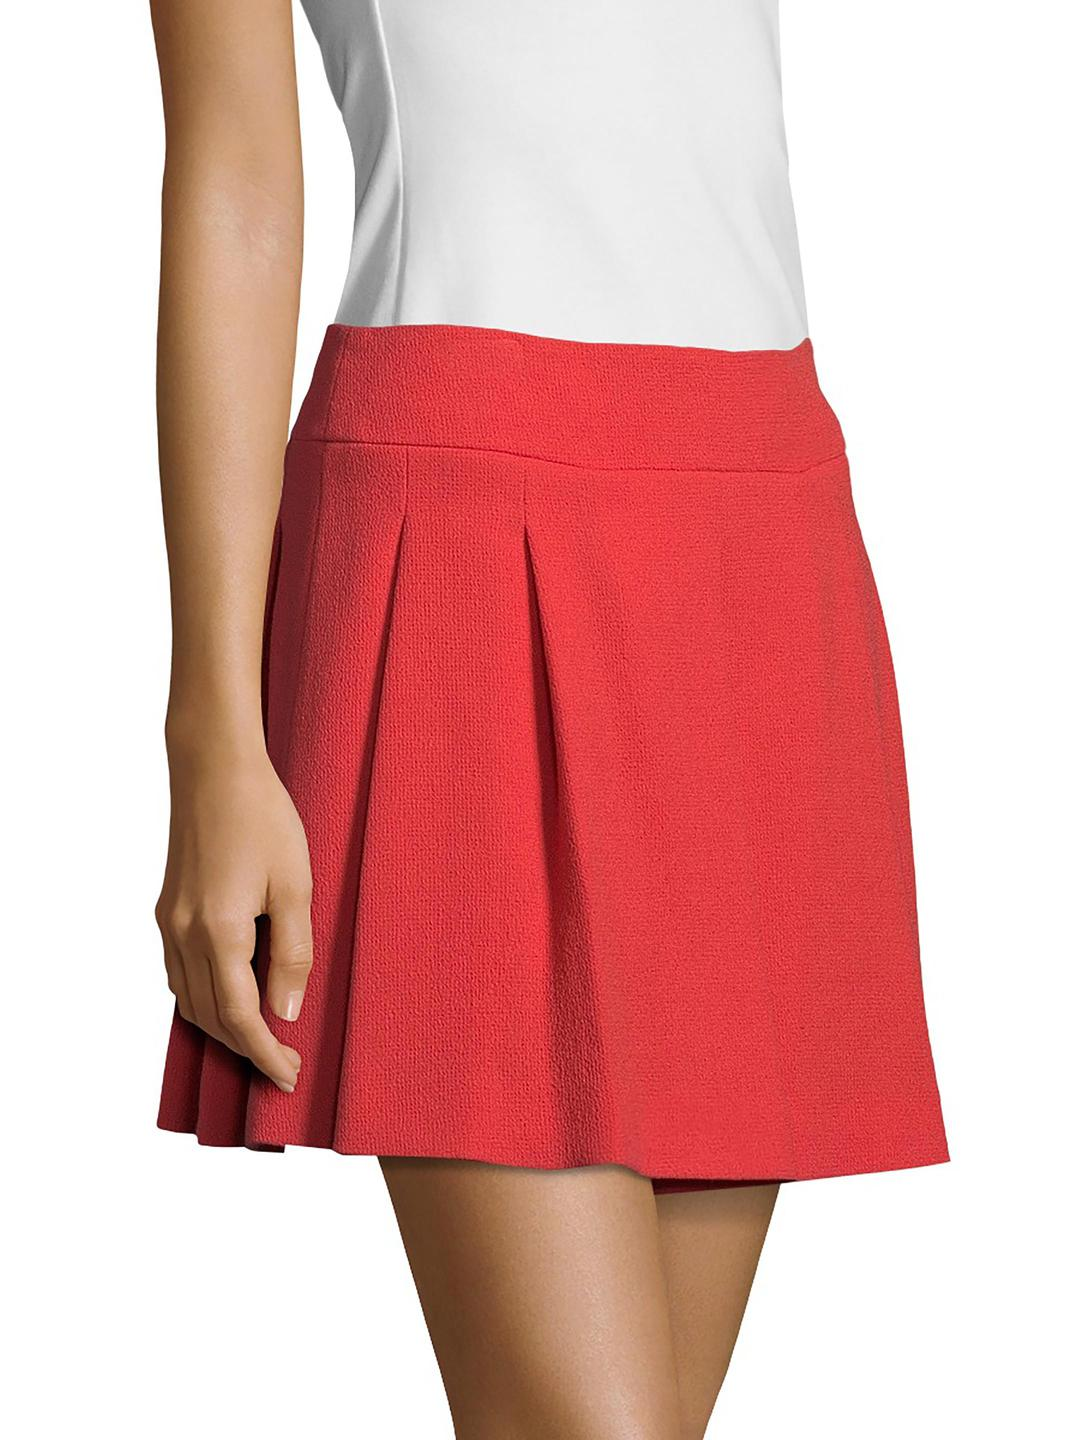 d276302549 Gallery. Previously sold at: Gilt · Women's Red Skirts ...